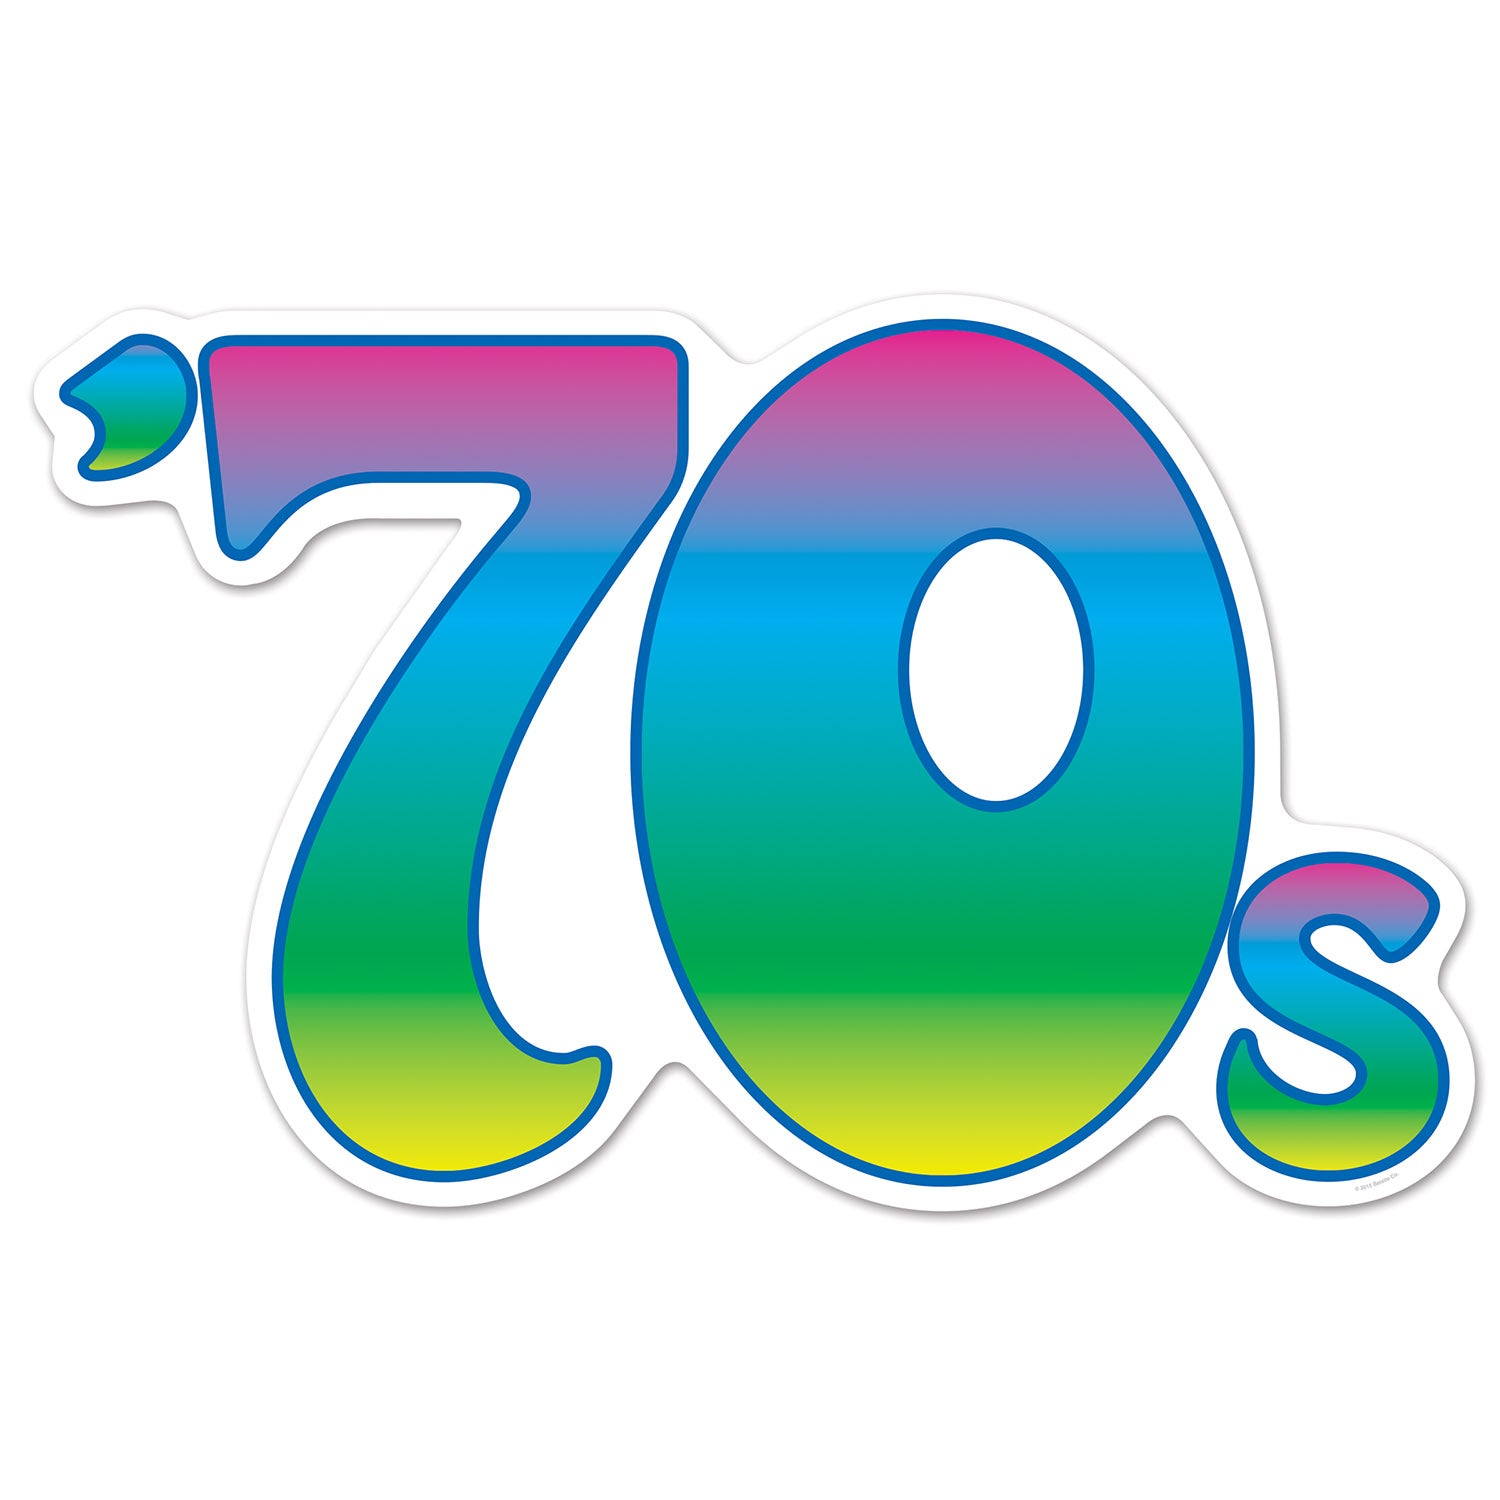 70's Cutout by Beistle - 70's Theme Decorations